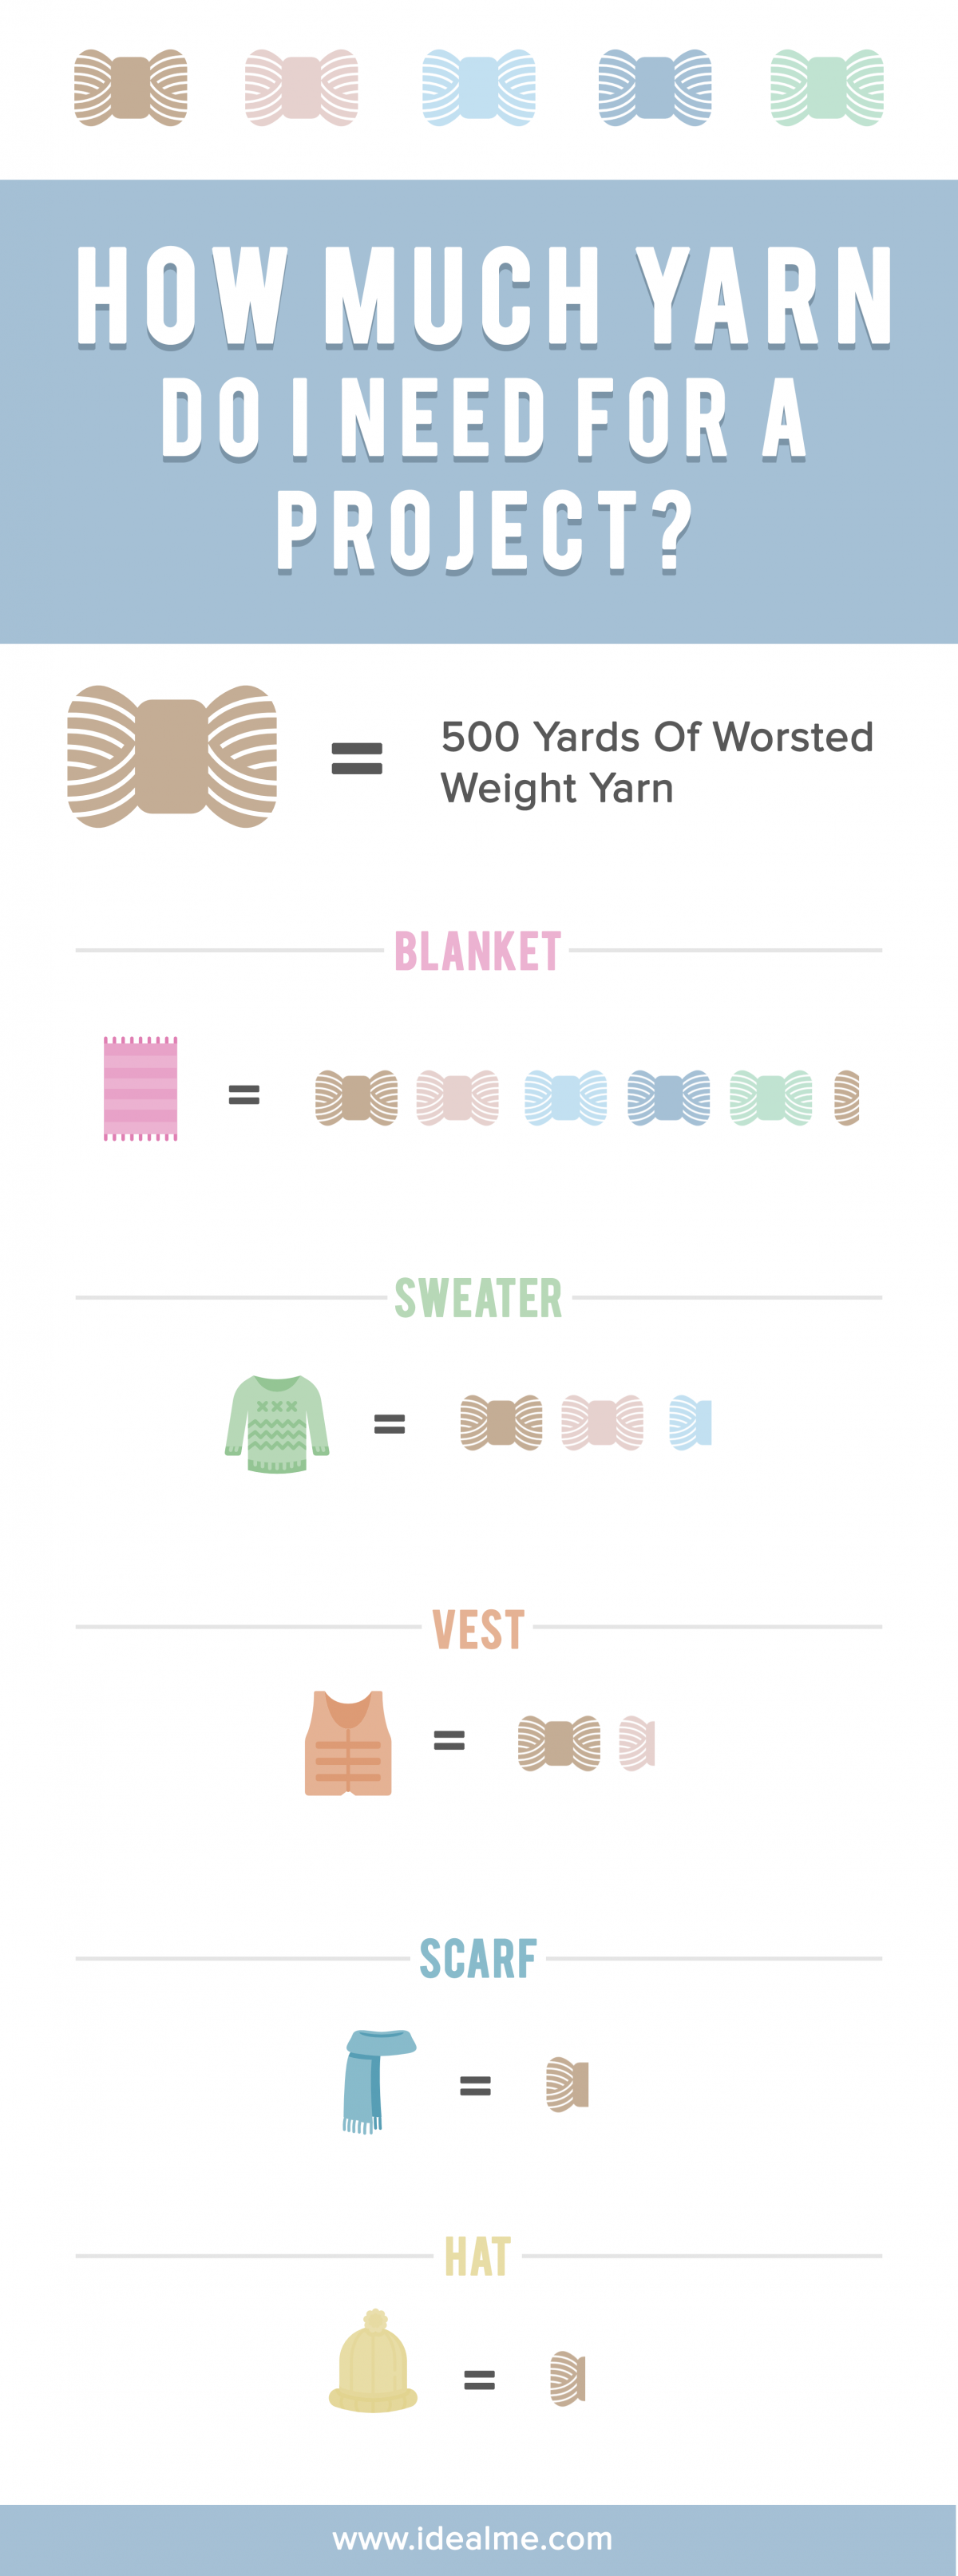 How Much Yarn Do I Need For A Project